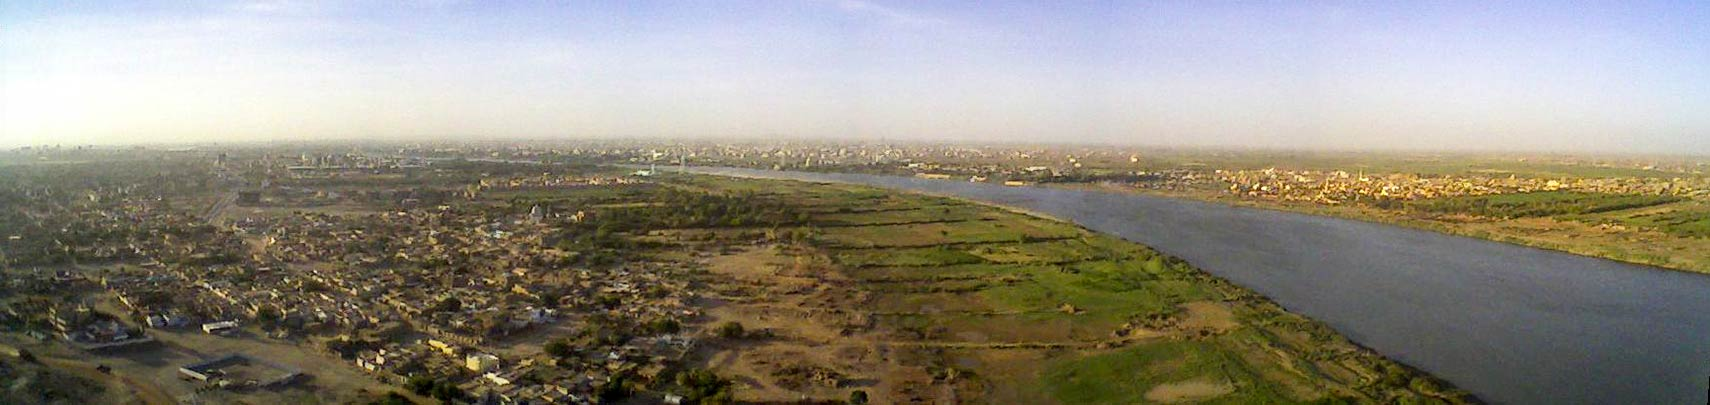 Panorama of Karthoum at the river Nile